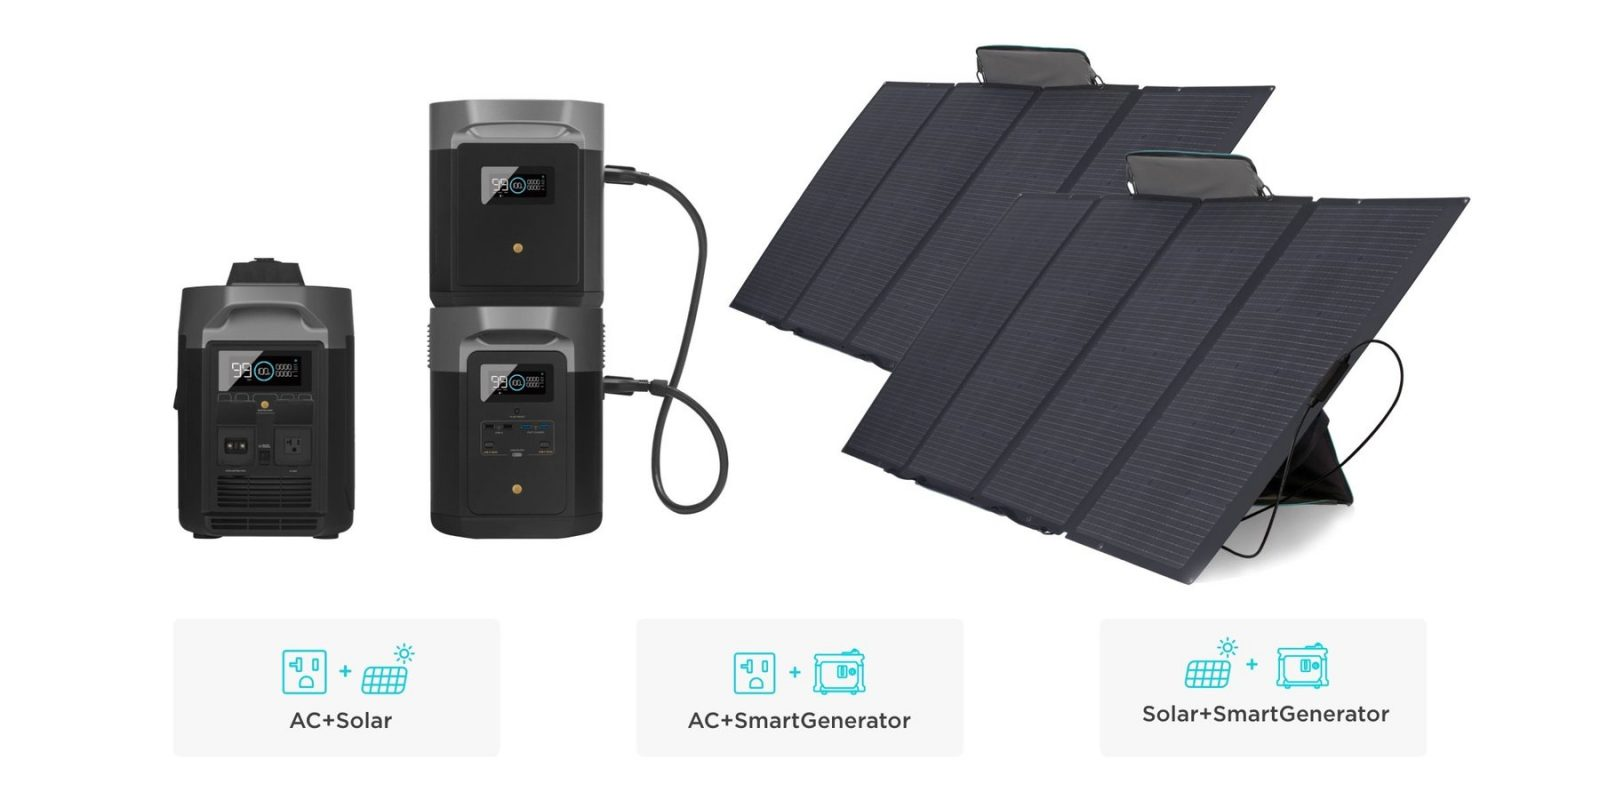 EcoFlow Delta Max Smart Extra Battery Convenient and Fast Dual Charging